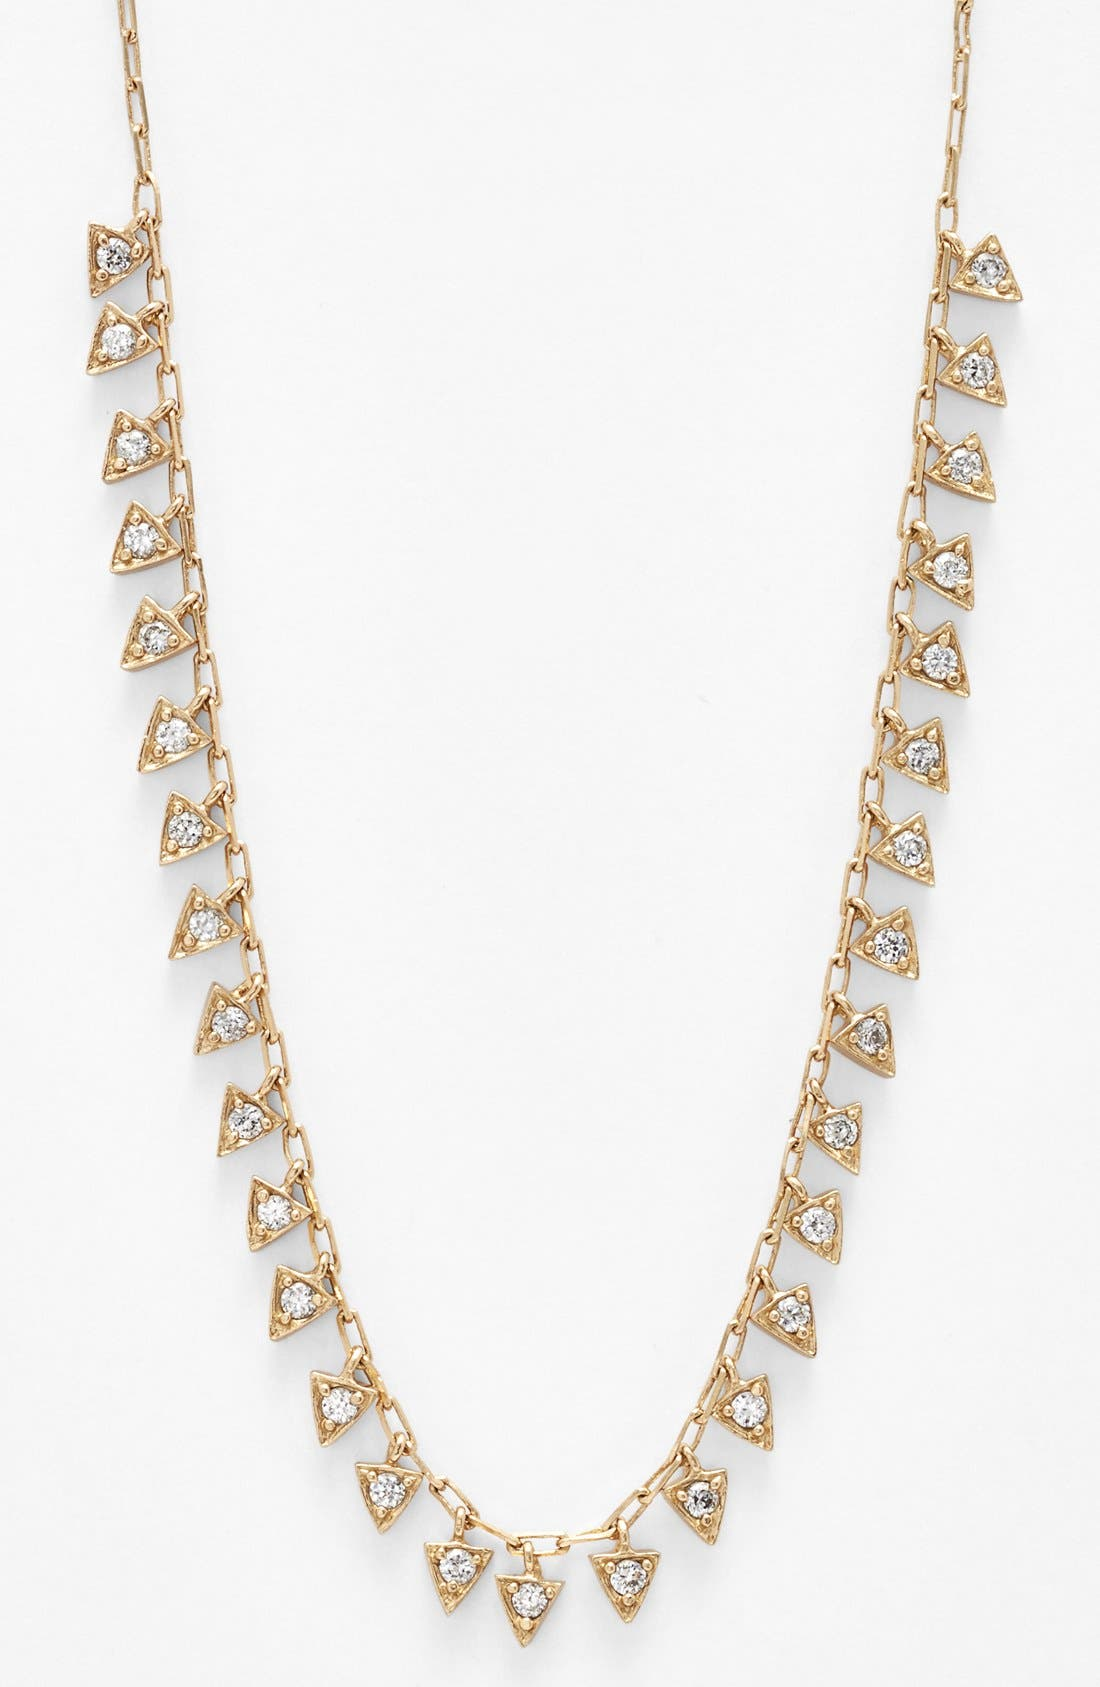 Main Image - Melinda Maria 'Pyramid - Mini Fringe' Frontal Necklace